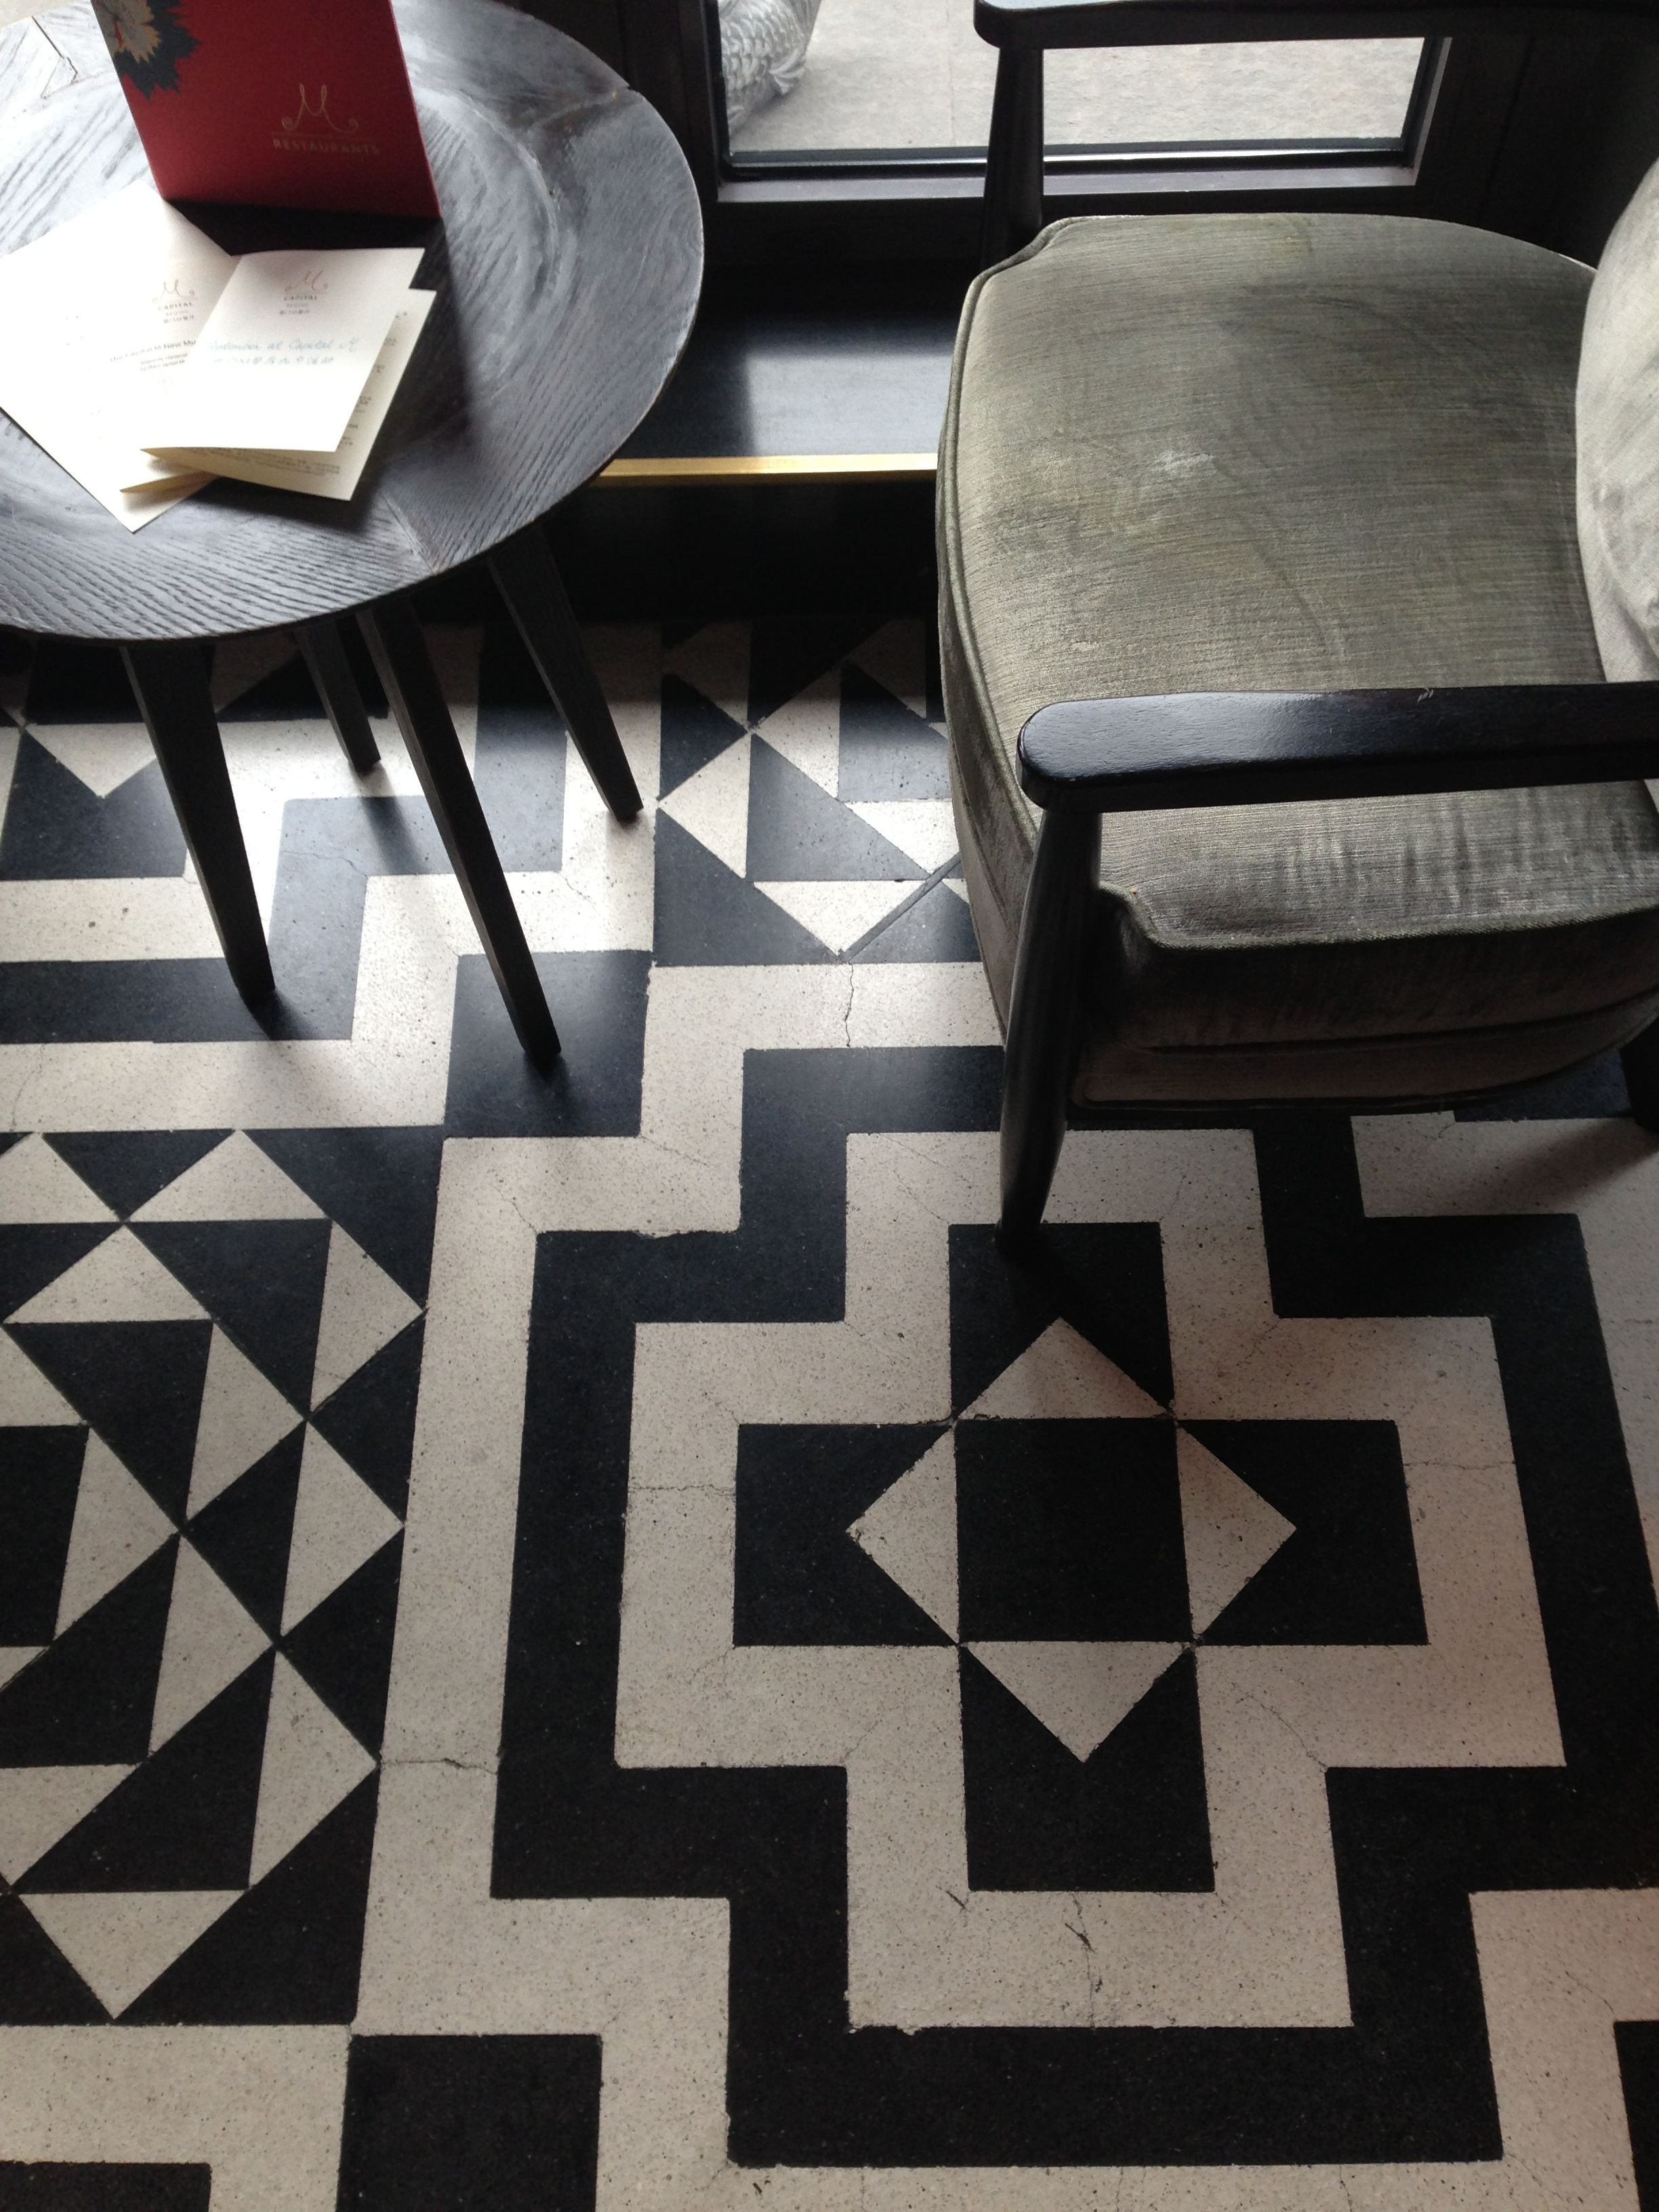 Pin By Clare Orrom Swan On Home Ideas Black And White Tiles White Tile Floor Flooring